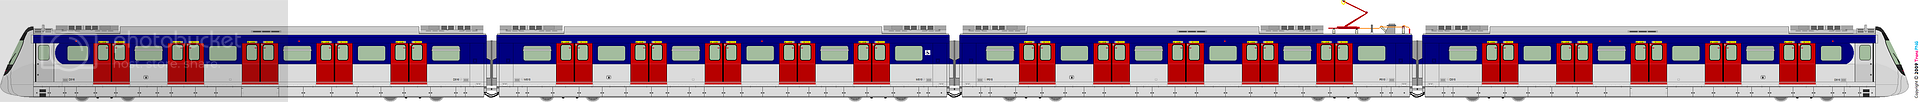 Commuter Train 2098